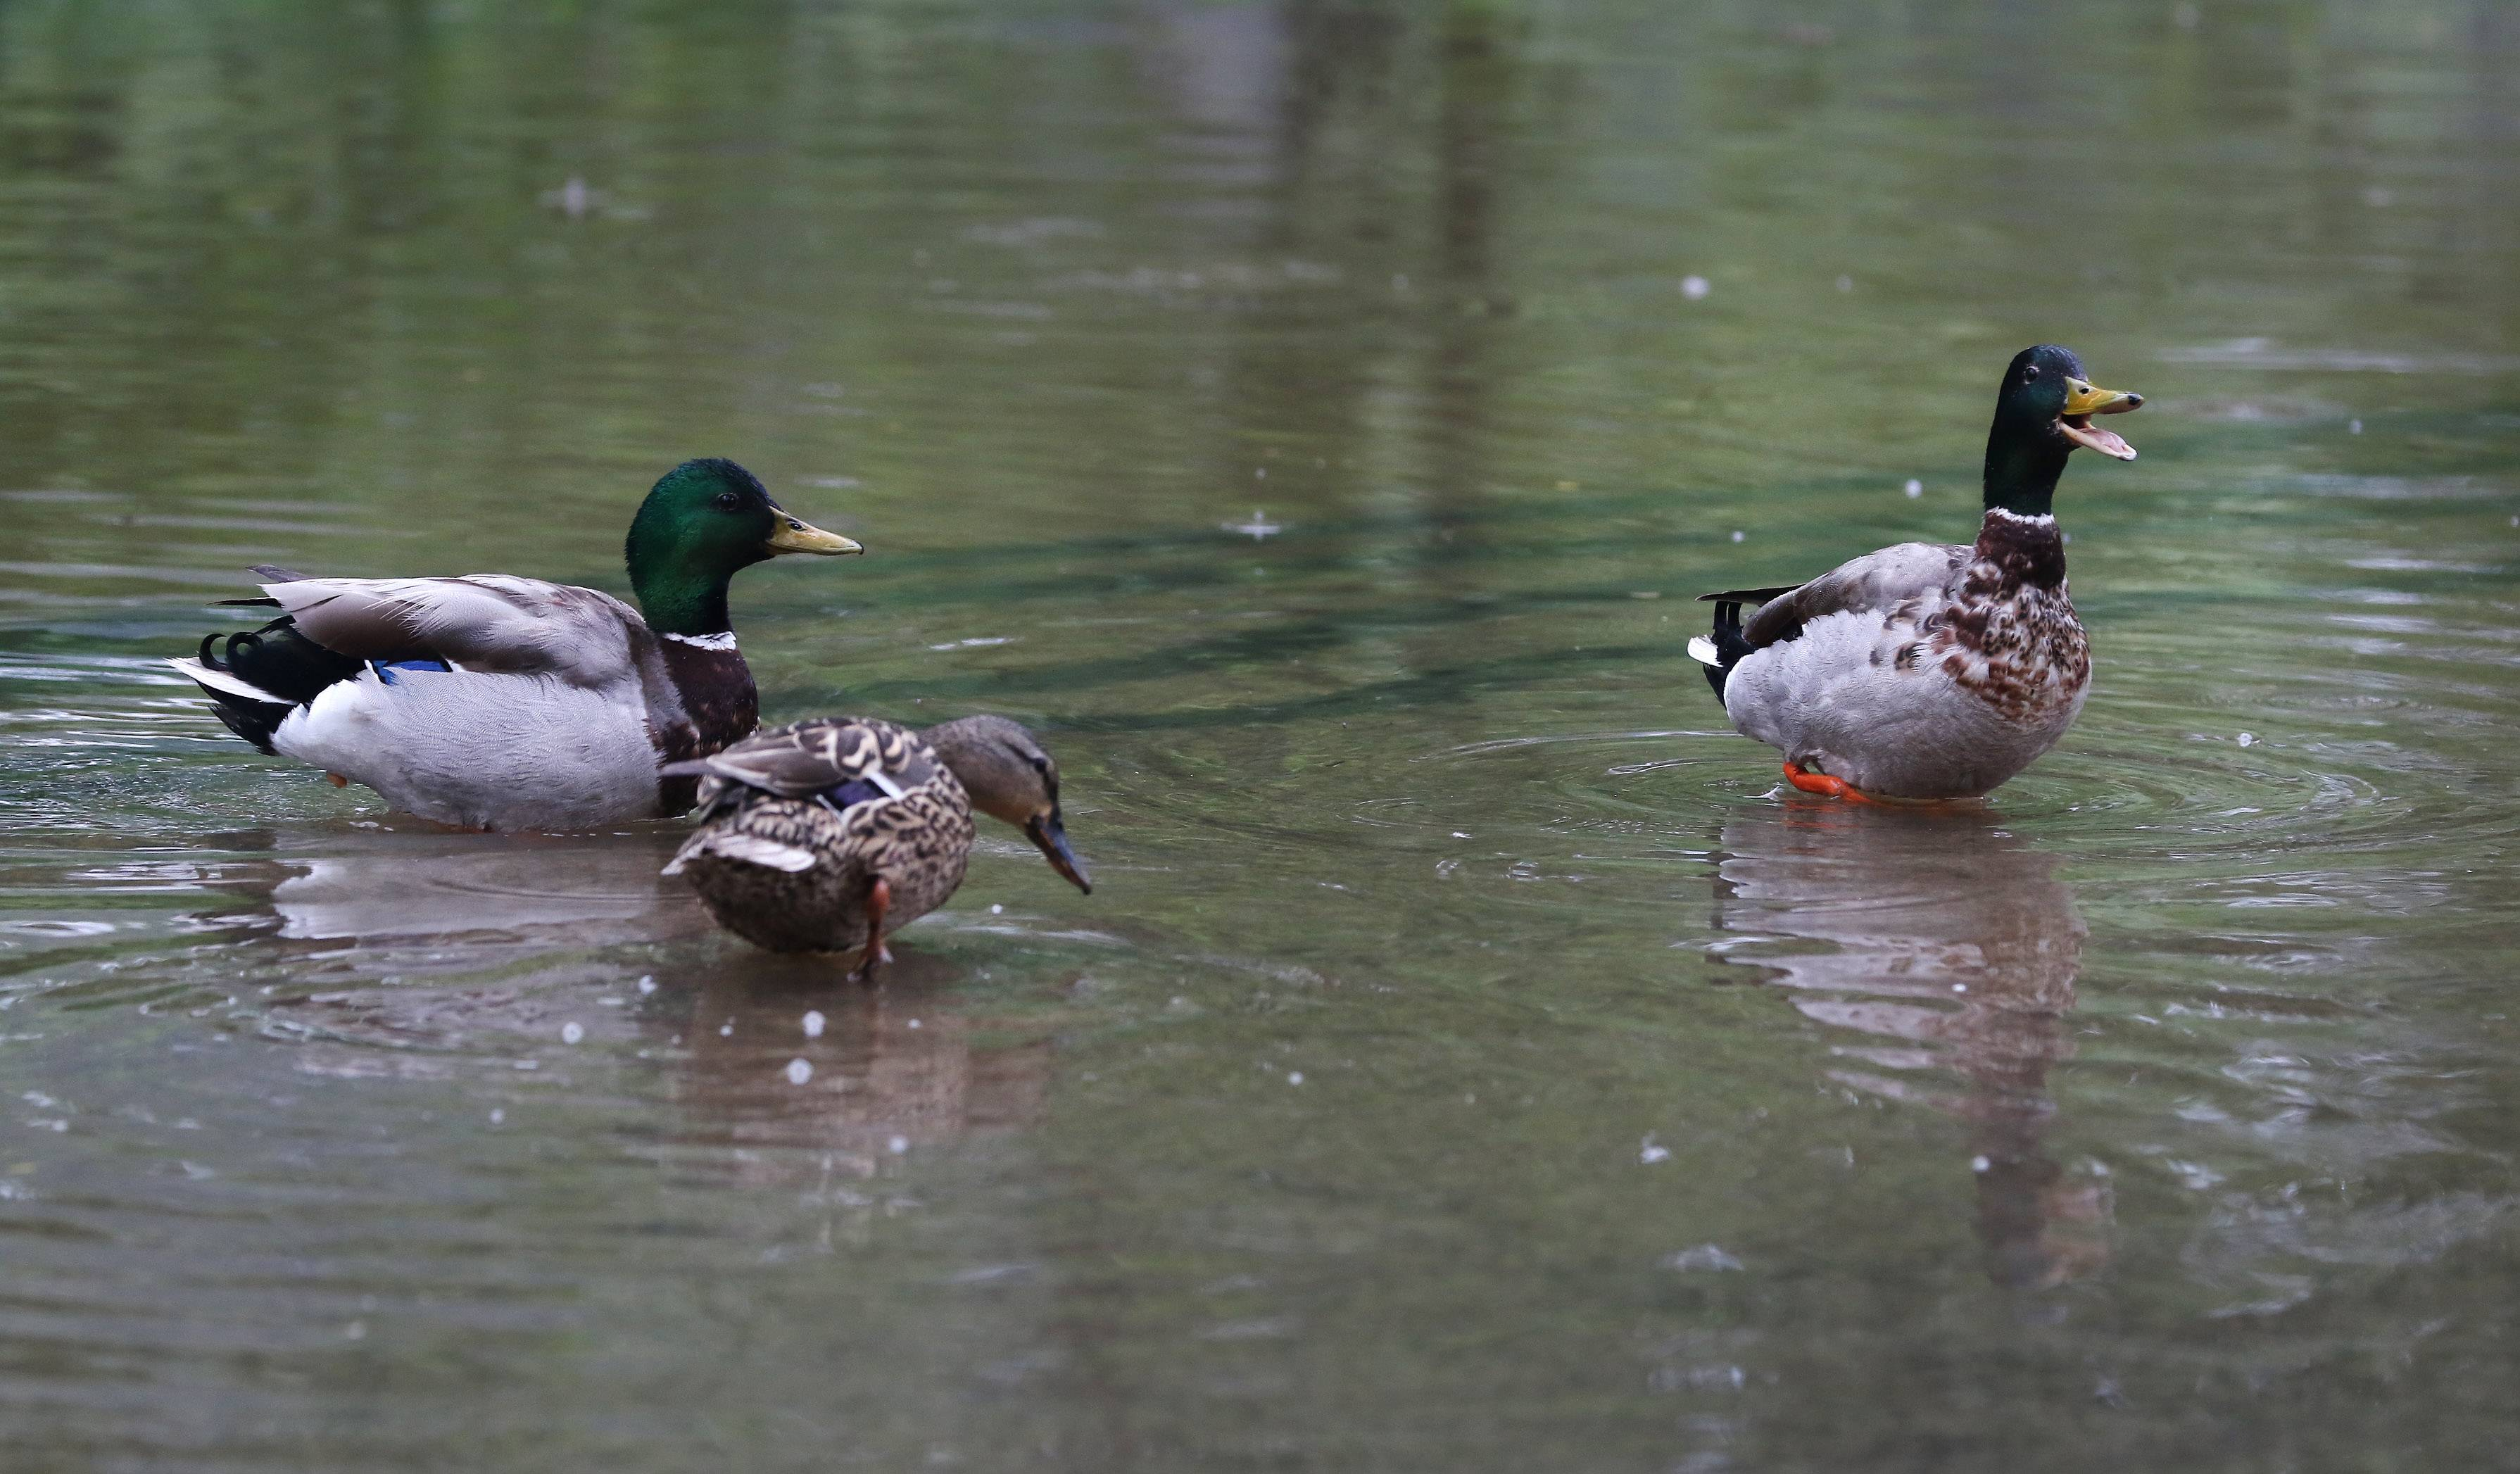 Ducks enjoy Hillside Avenue all to themselves after it was flooded near Willow Road in Prospect Heights on Sunday.